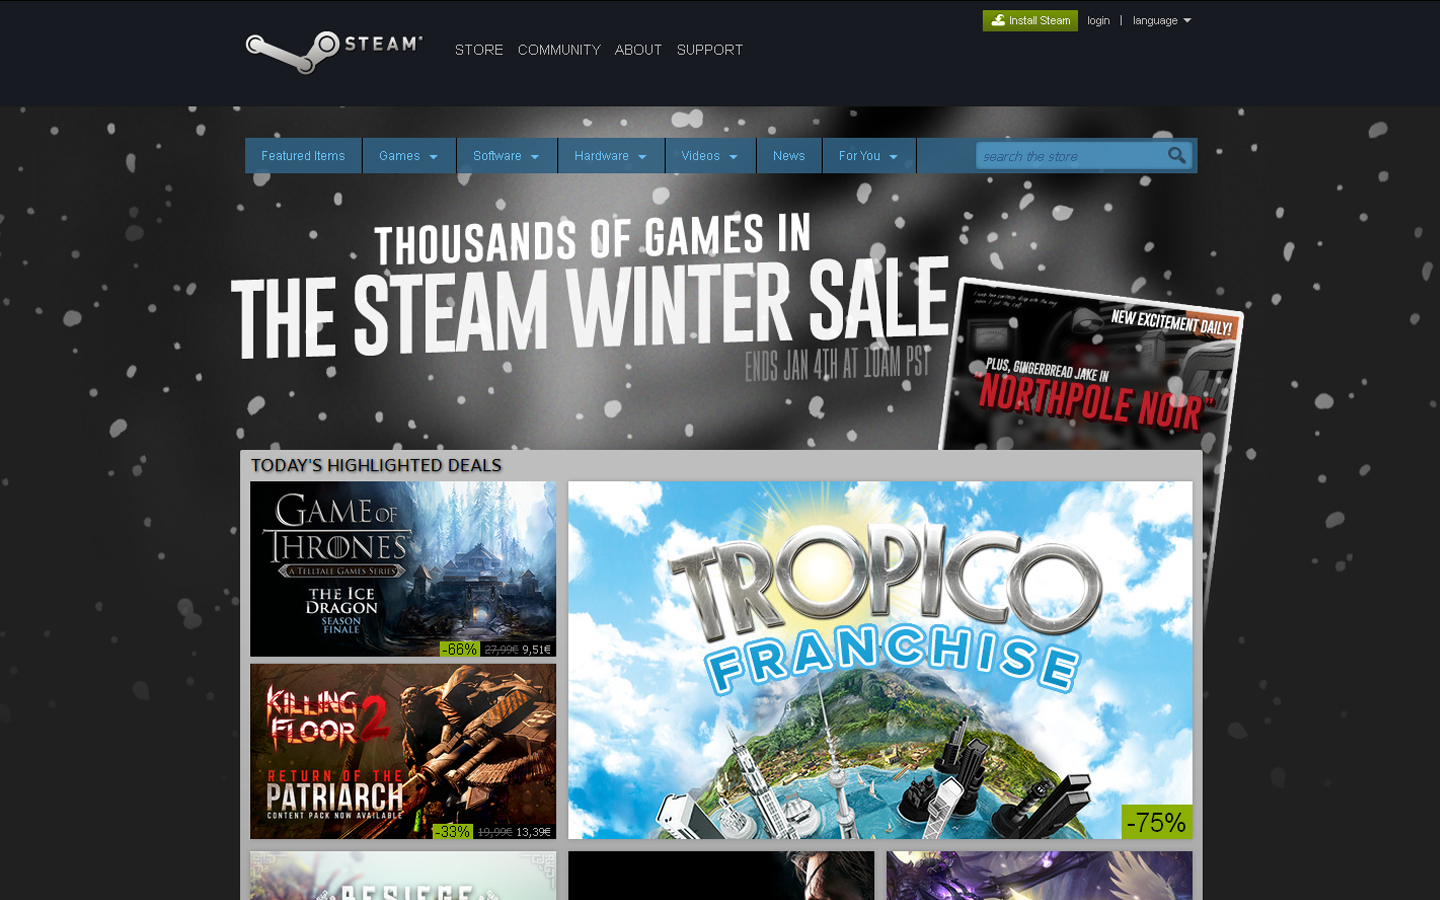 Arranca hoje a Steam Winter Sale